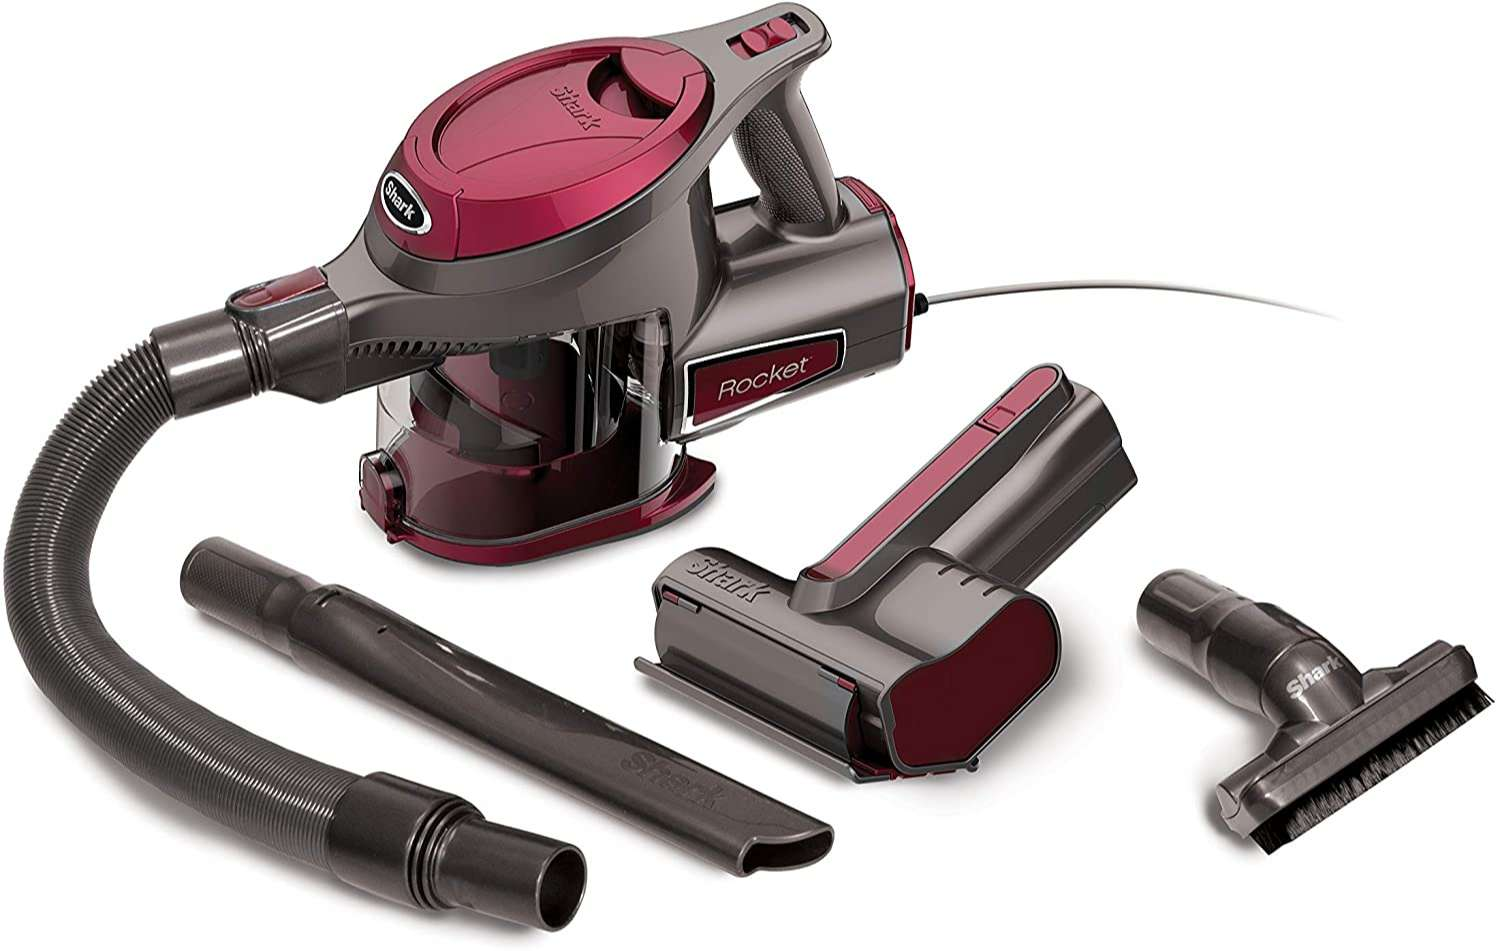 THE SHARK ROCKET HANDVAC HV292